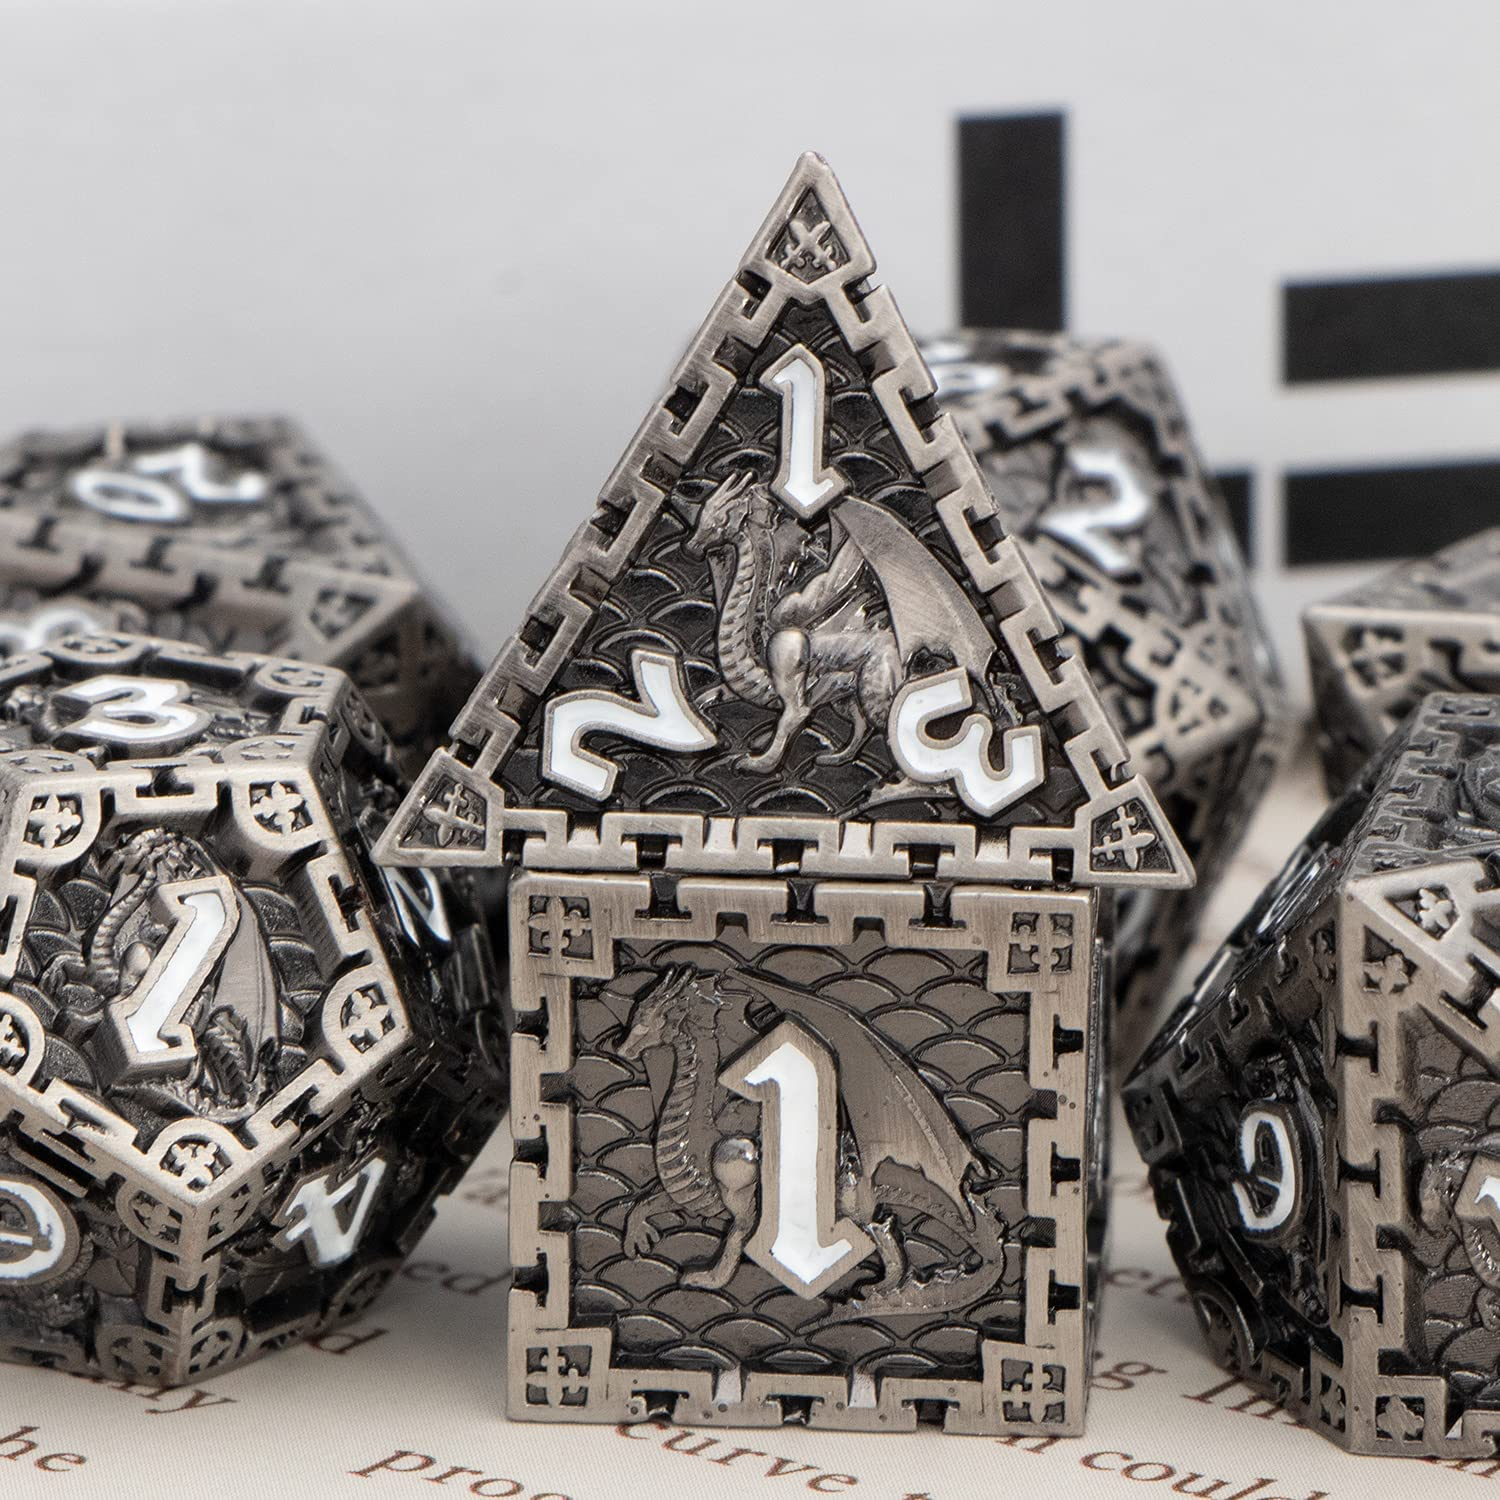 DND Dice Set with Gift Box S Ranking TOP16 Product Metal Polyhedral Pcs RUNFNG 7